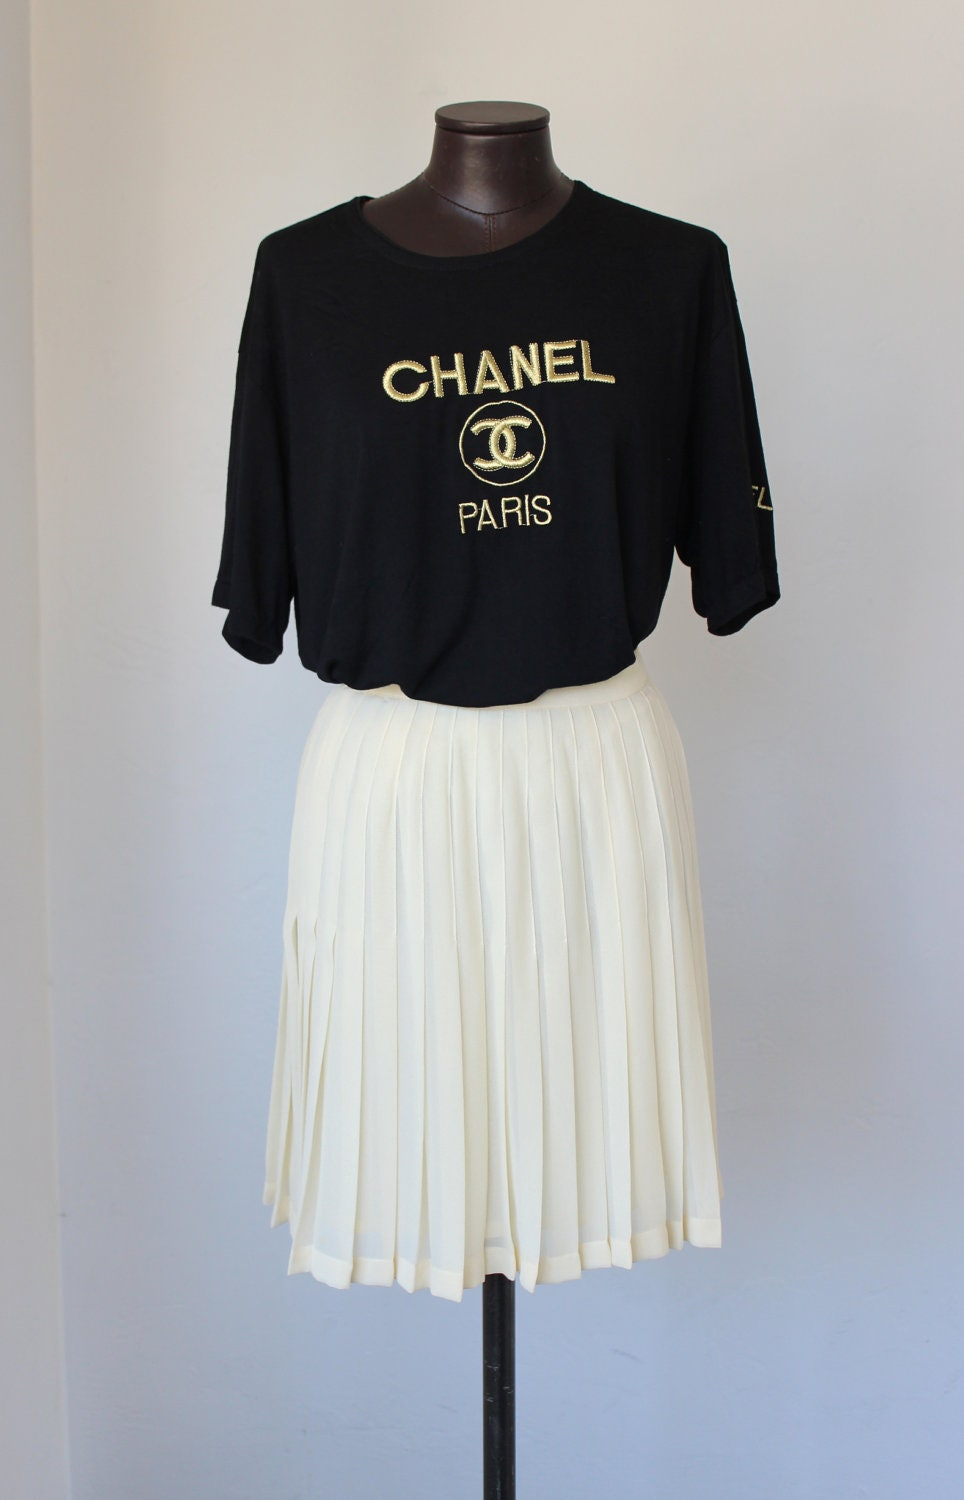 Vintage Chanel T Shirt Black W Gold Metallic Embroidered